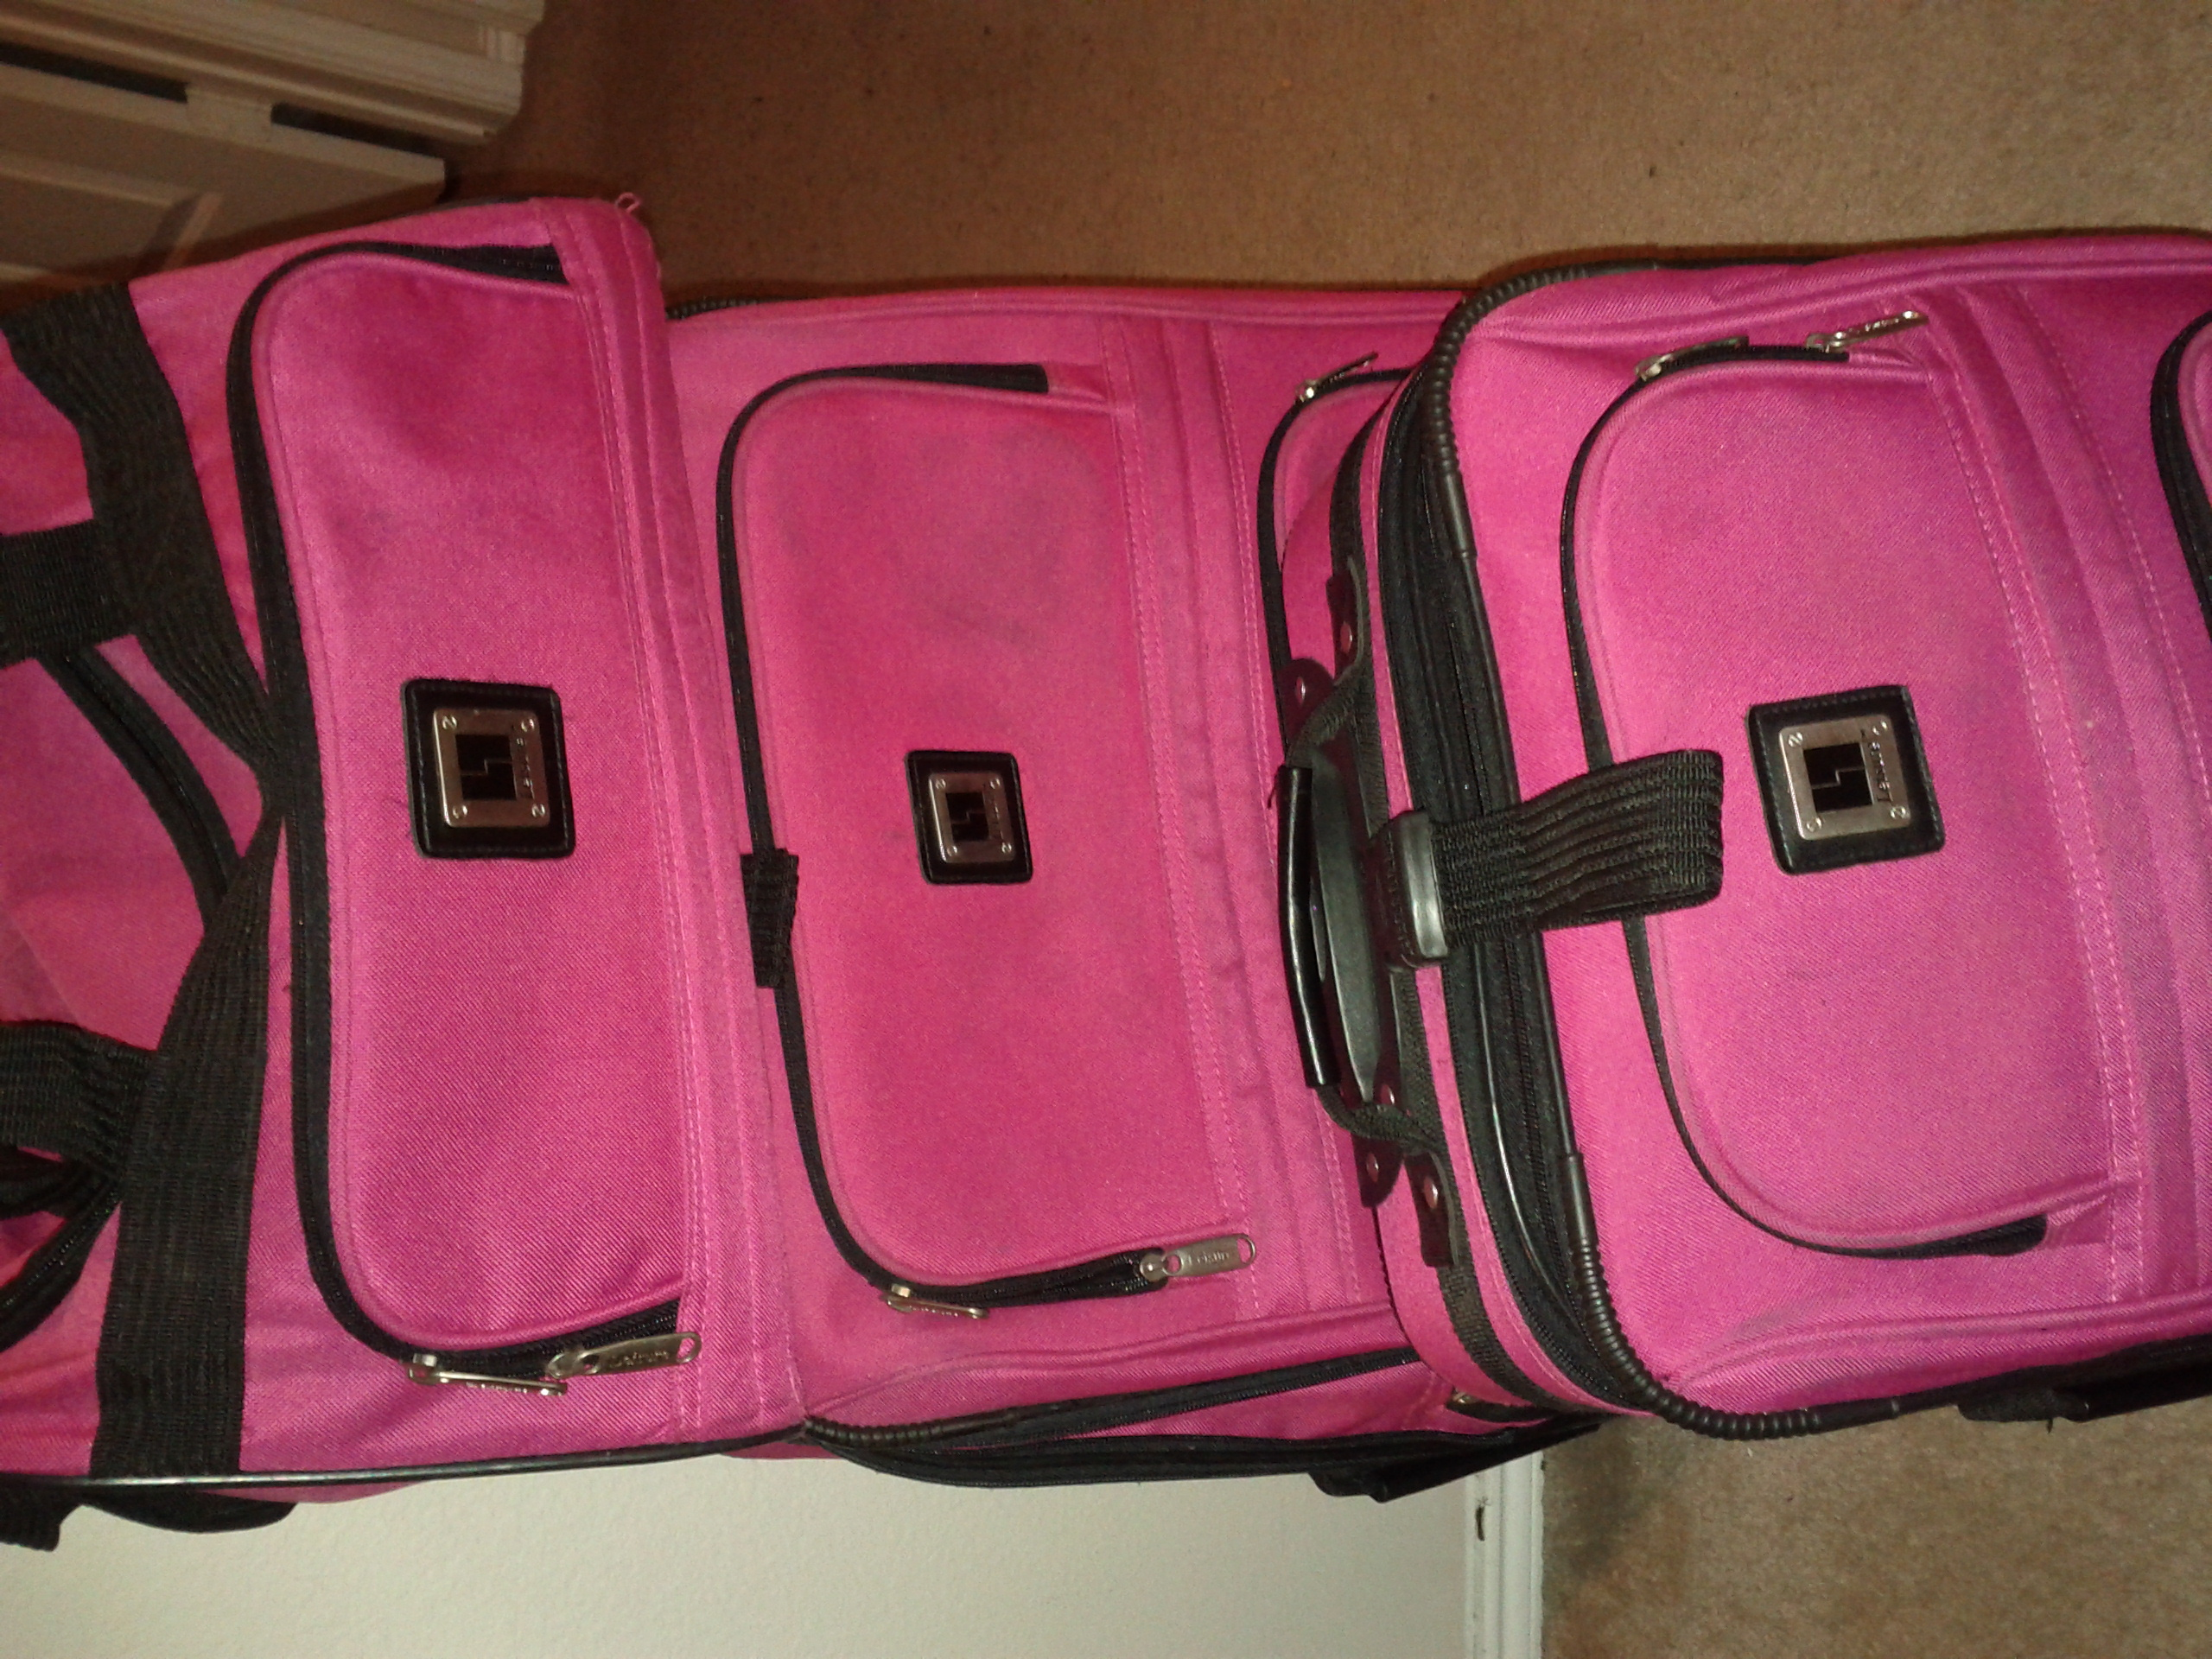 Loanables Leisure 3 Pc Luggage Set Rental Located In